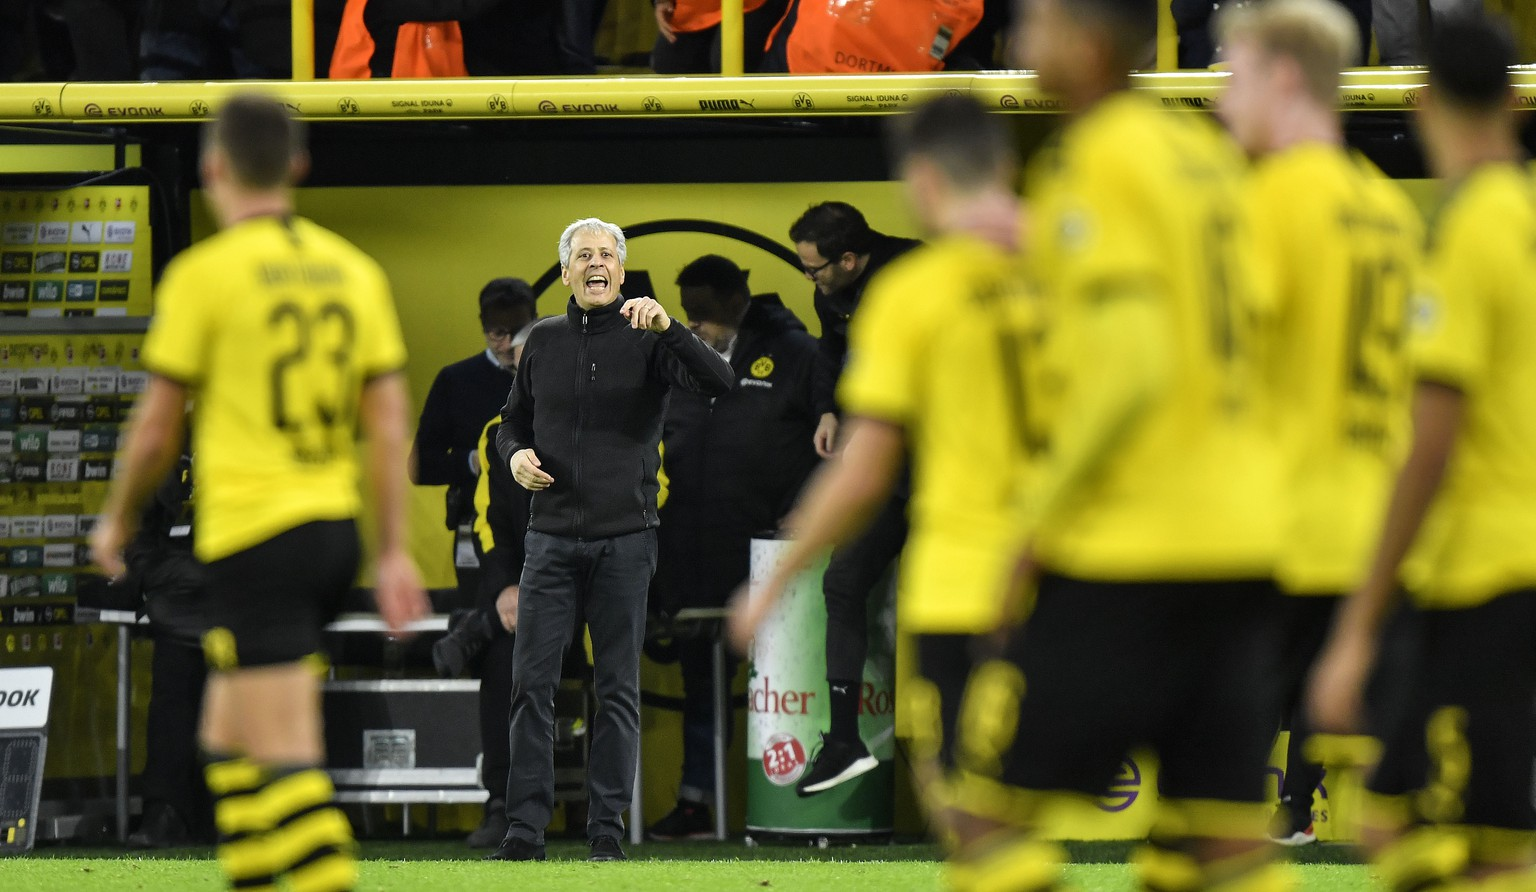 Dortmund's head coach Lucien Favre reacts to his team during the German Bundesliga soccer match between Borussia Dortmund and VfL Wolfsburg in Dortmund, Germany, Saturday Nov. 2, 2019. (AP Photo/Martin Meissner)